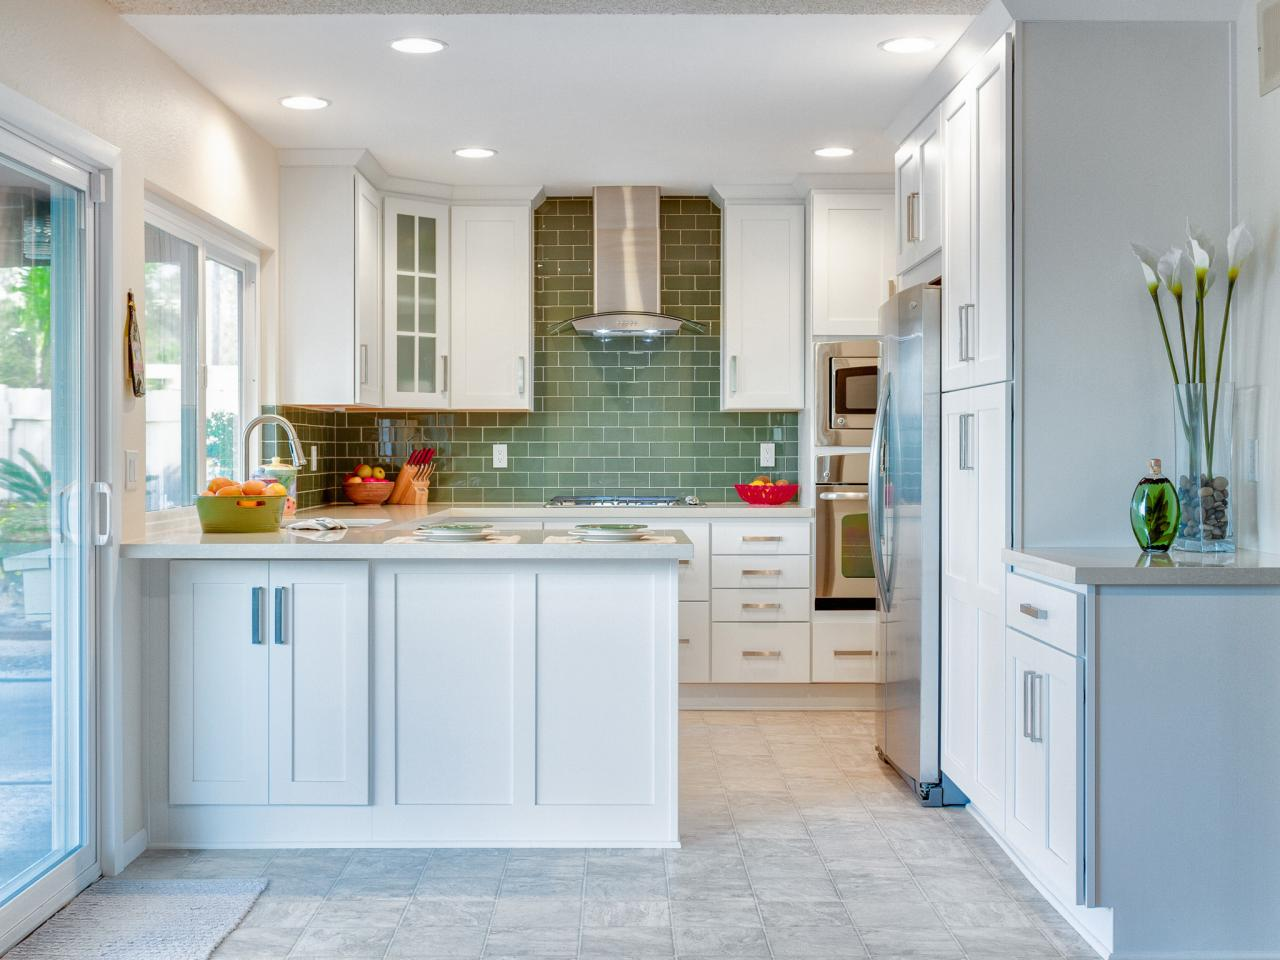 backsplashes small kitchens pictures ideas hgtv kitchen backsplashes kitchen backsplash pictures home design